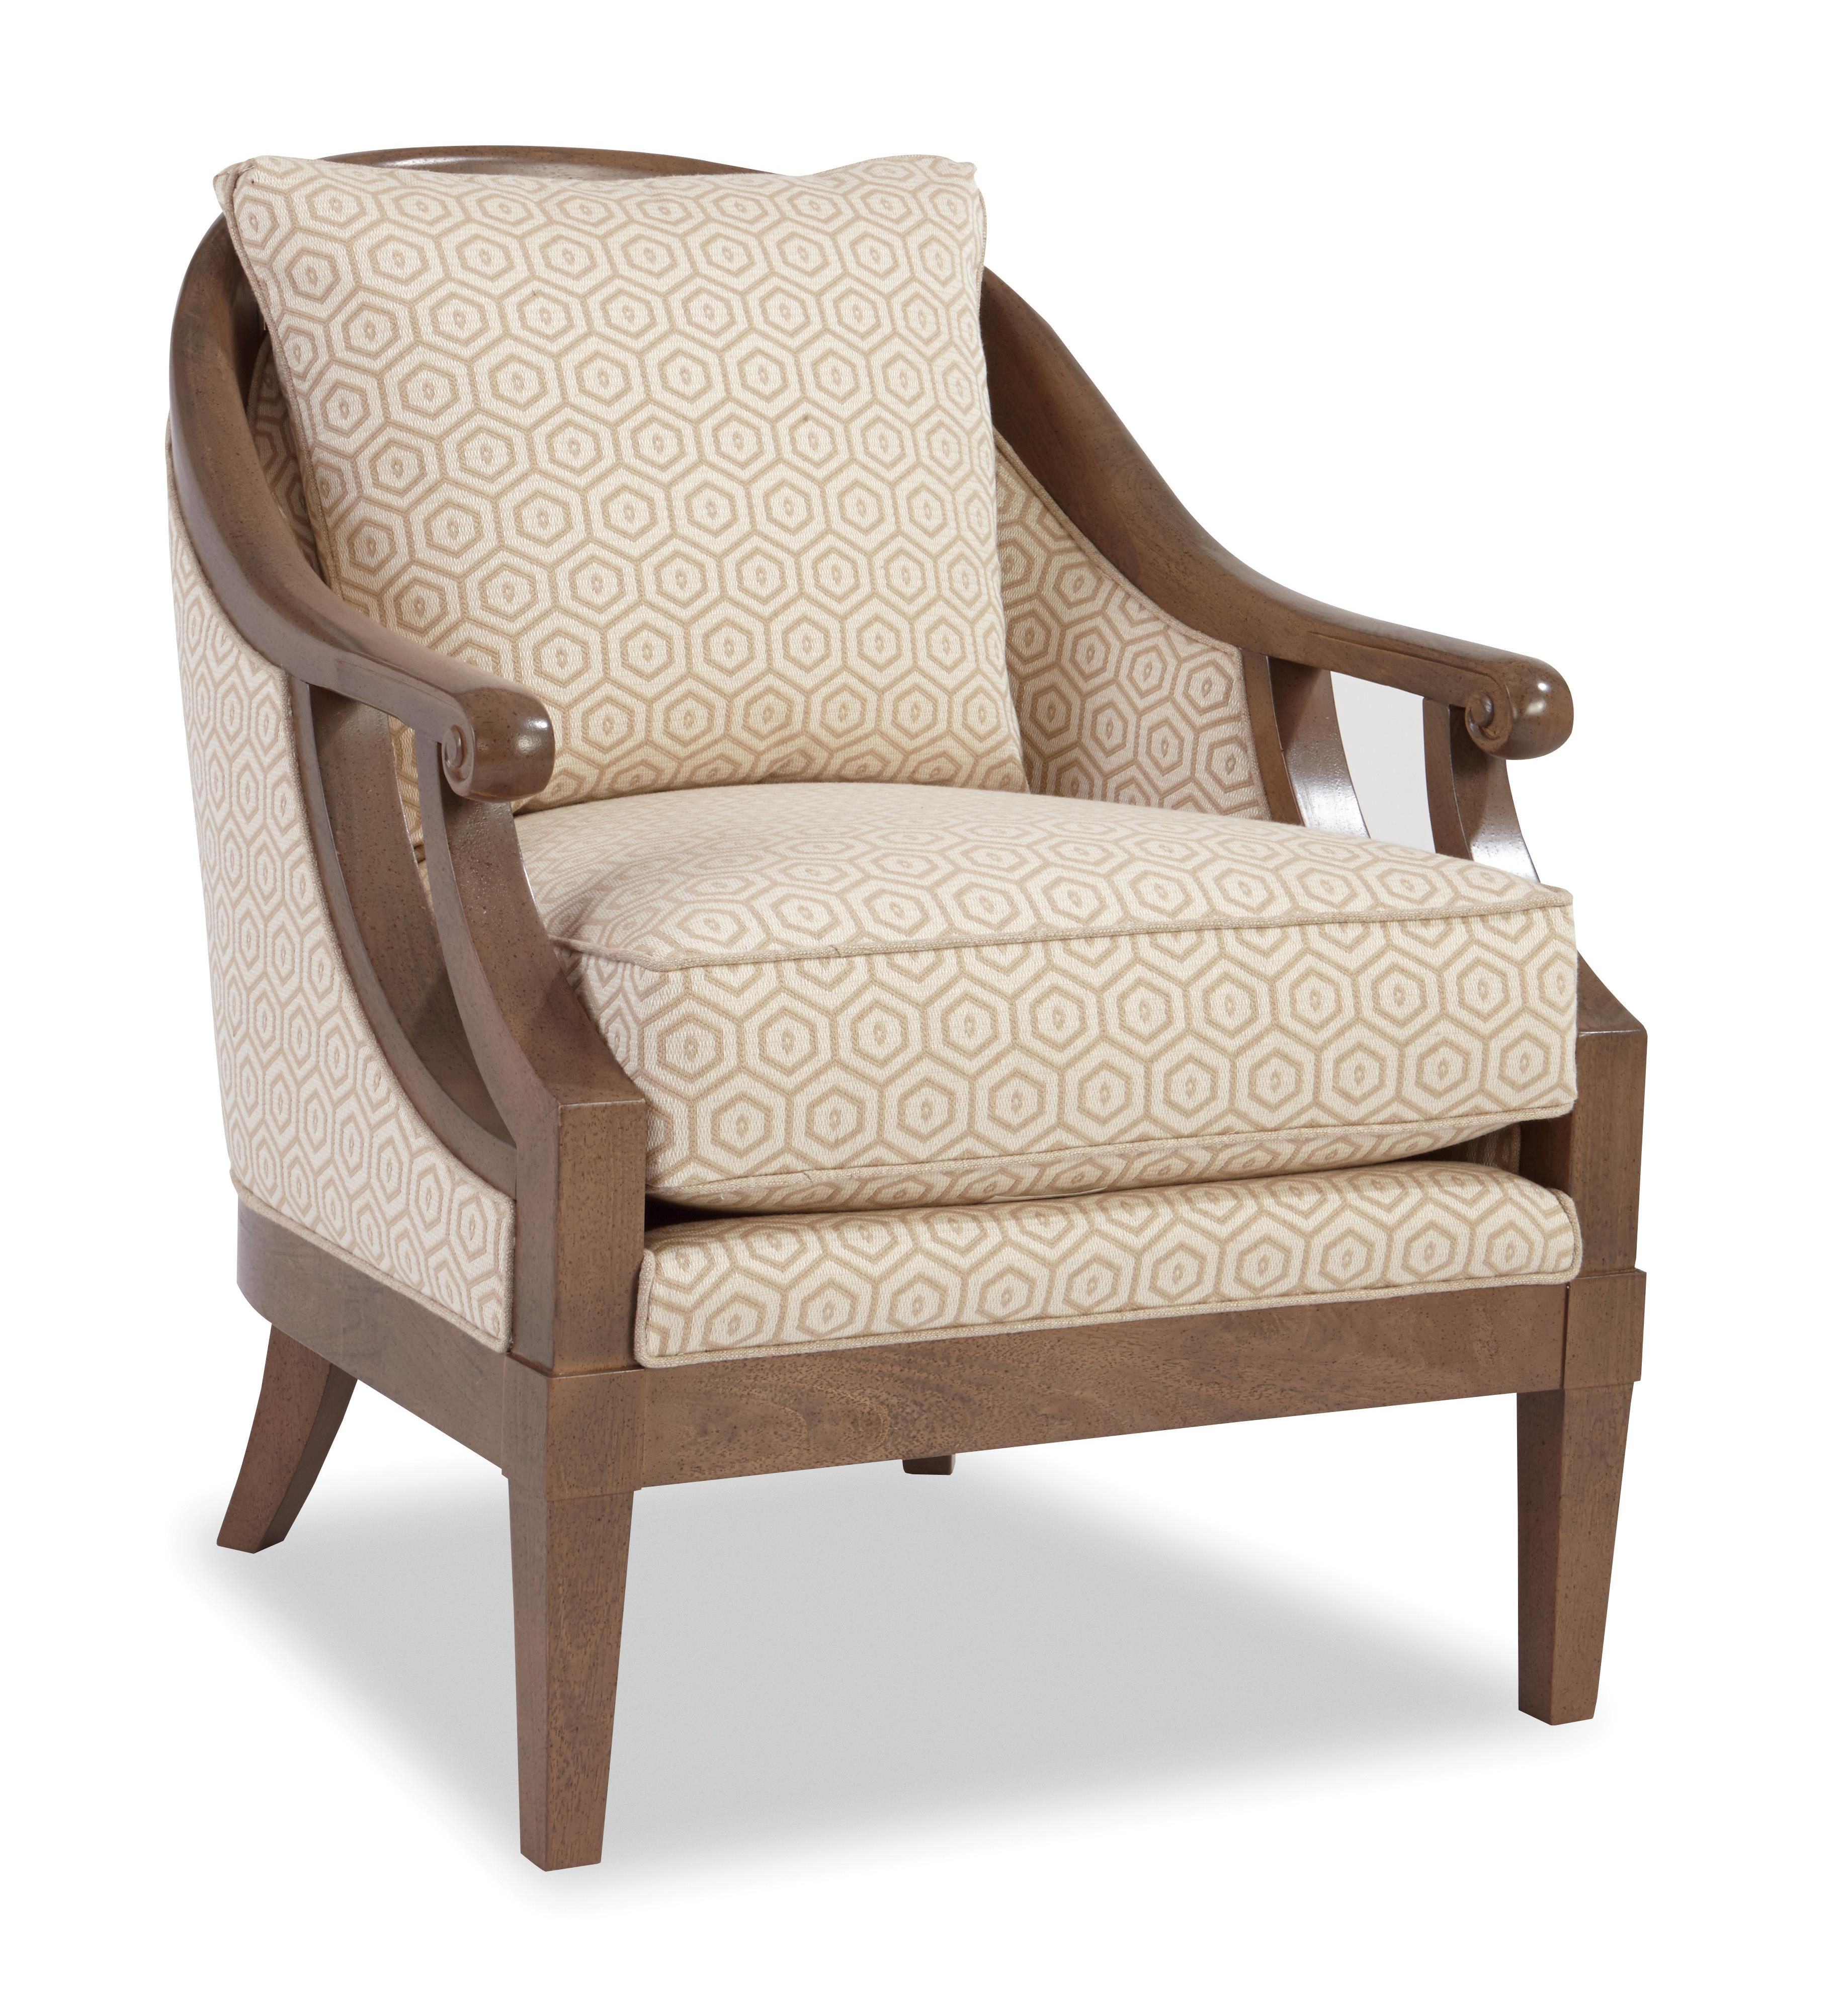 Craftmaster Accent Chairs Exposed Wood Chair   Item Number: 040010 NICNAC 10